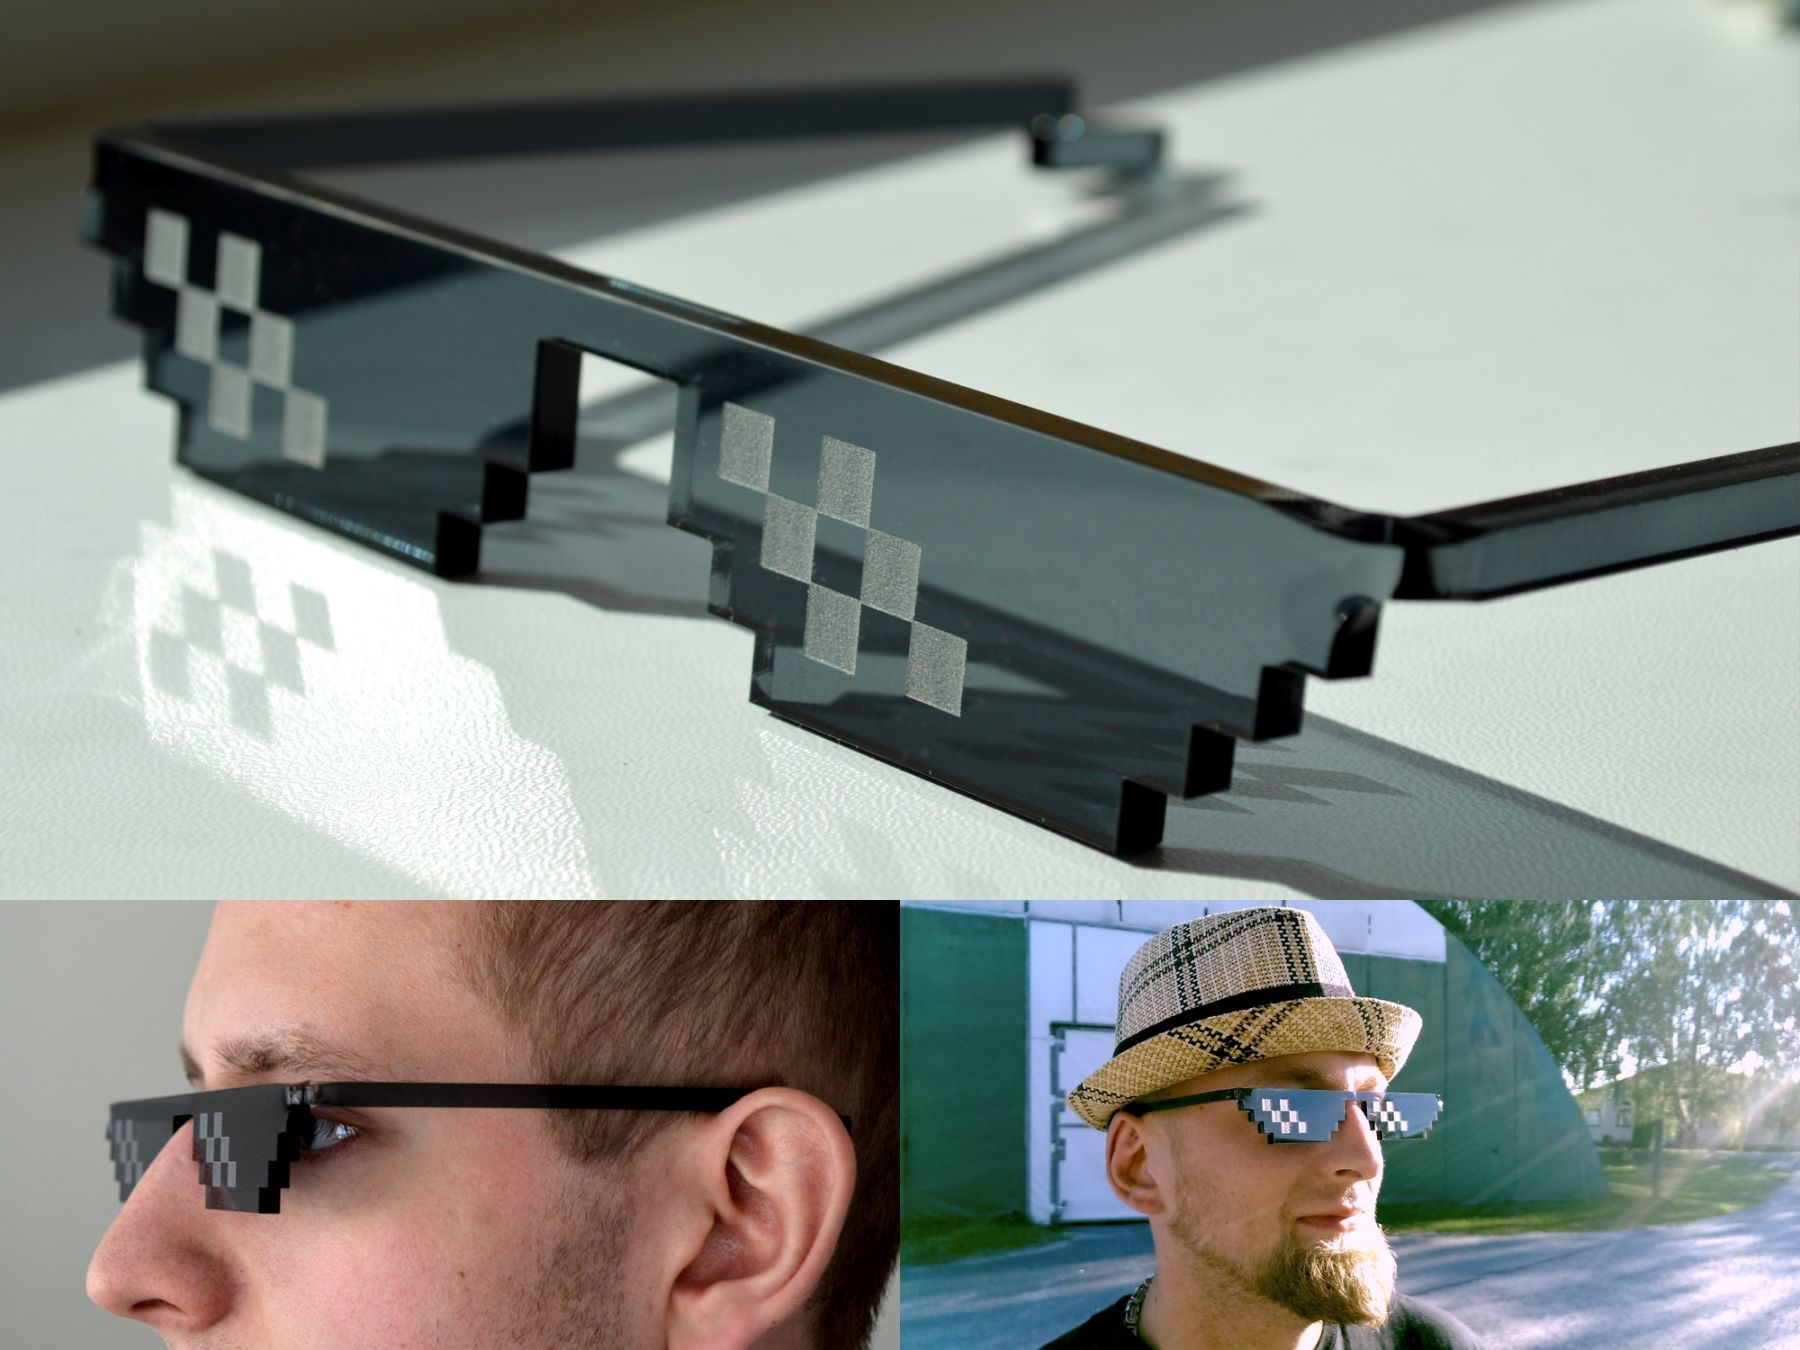 Sunglasses It Deal FinlandIndustrial Design With Cnc PiTOuwXZlk